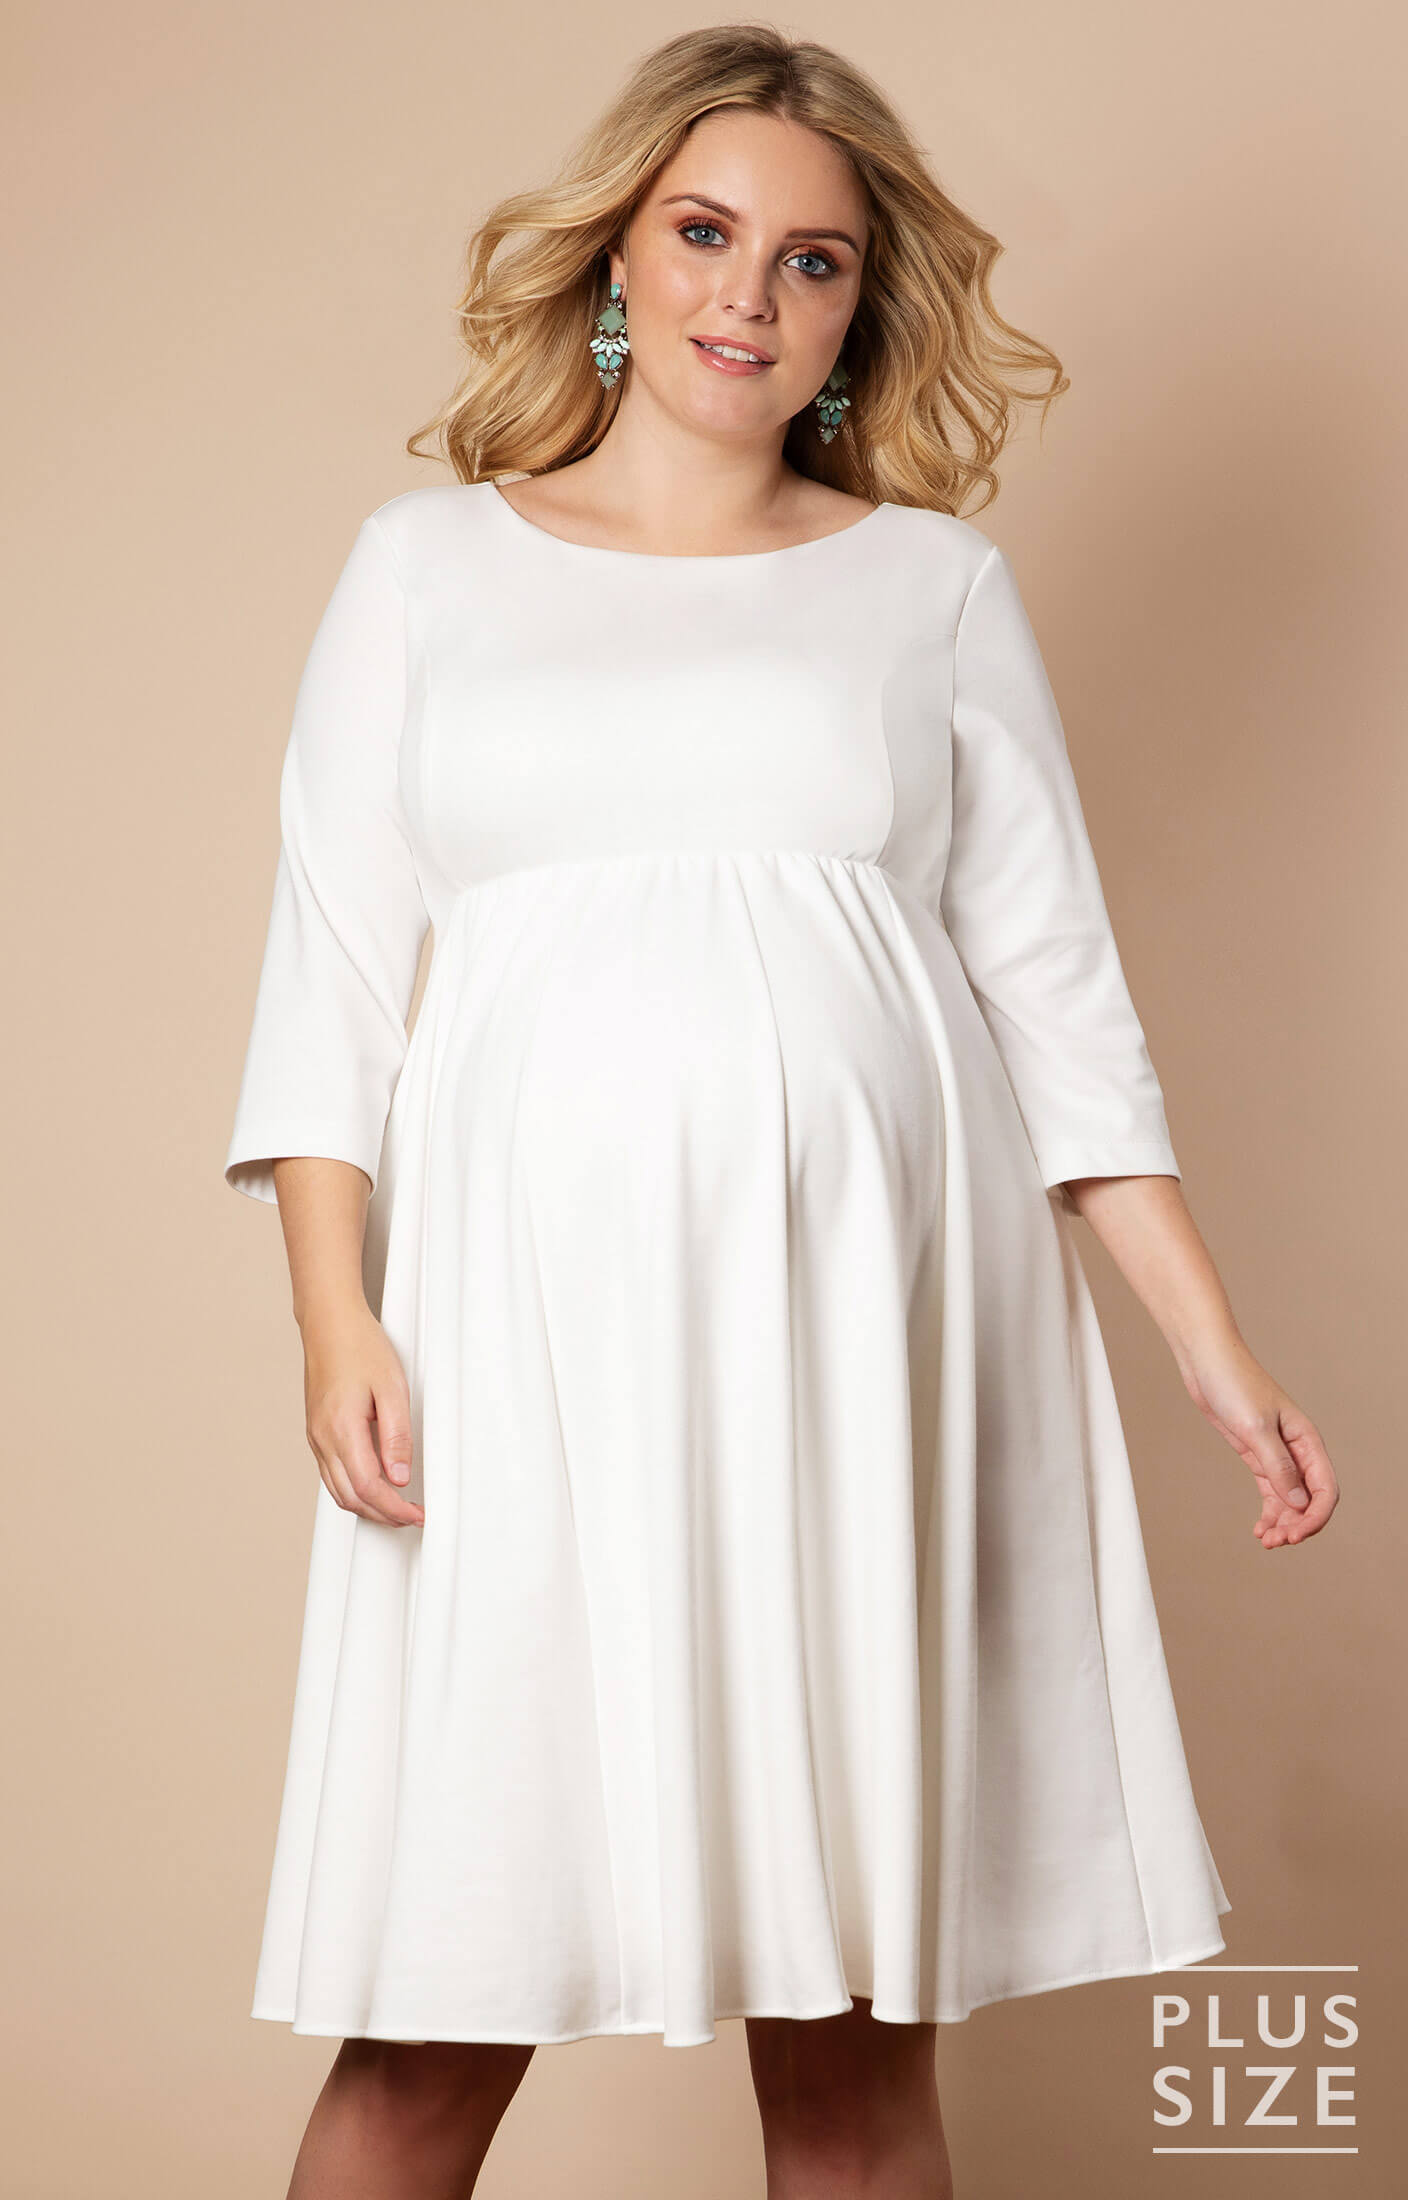 Sienna Maternity Plus Size Dress Short Cream - Maternity Wedding Dresses,  Evening Wear and Party Clothes by Tiffany Rose